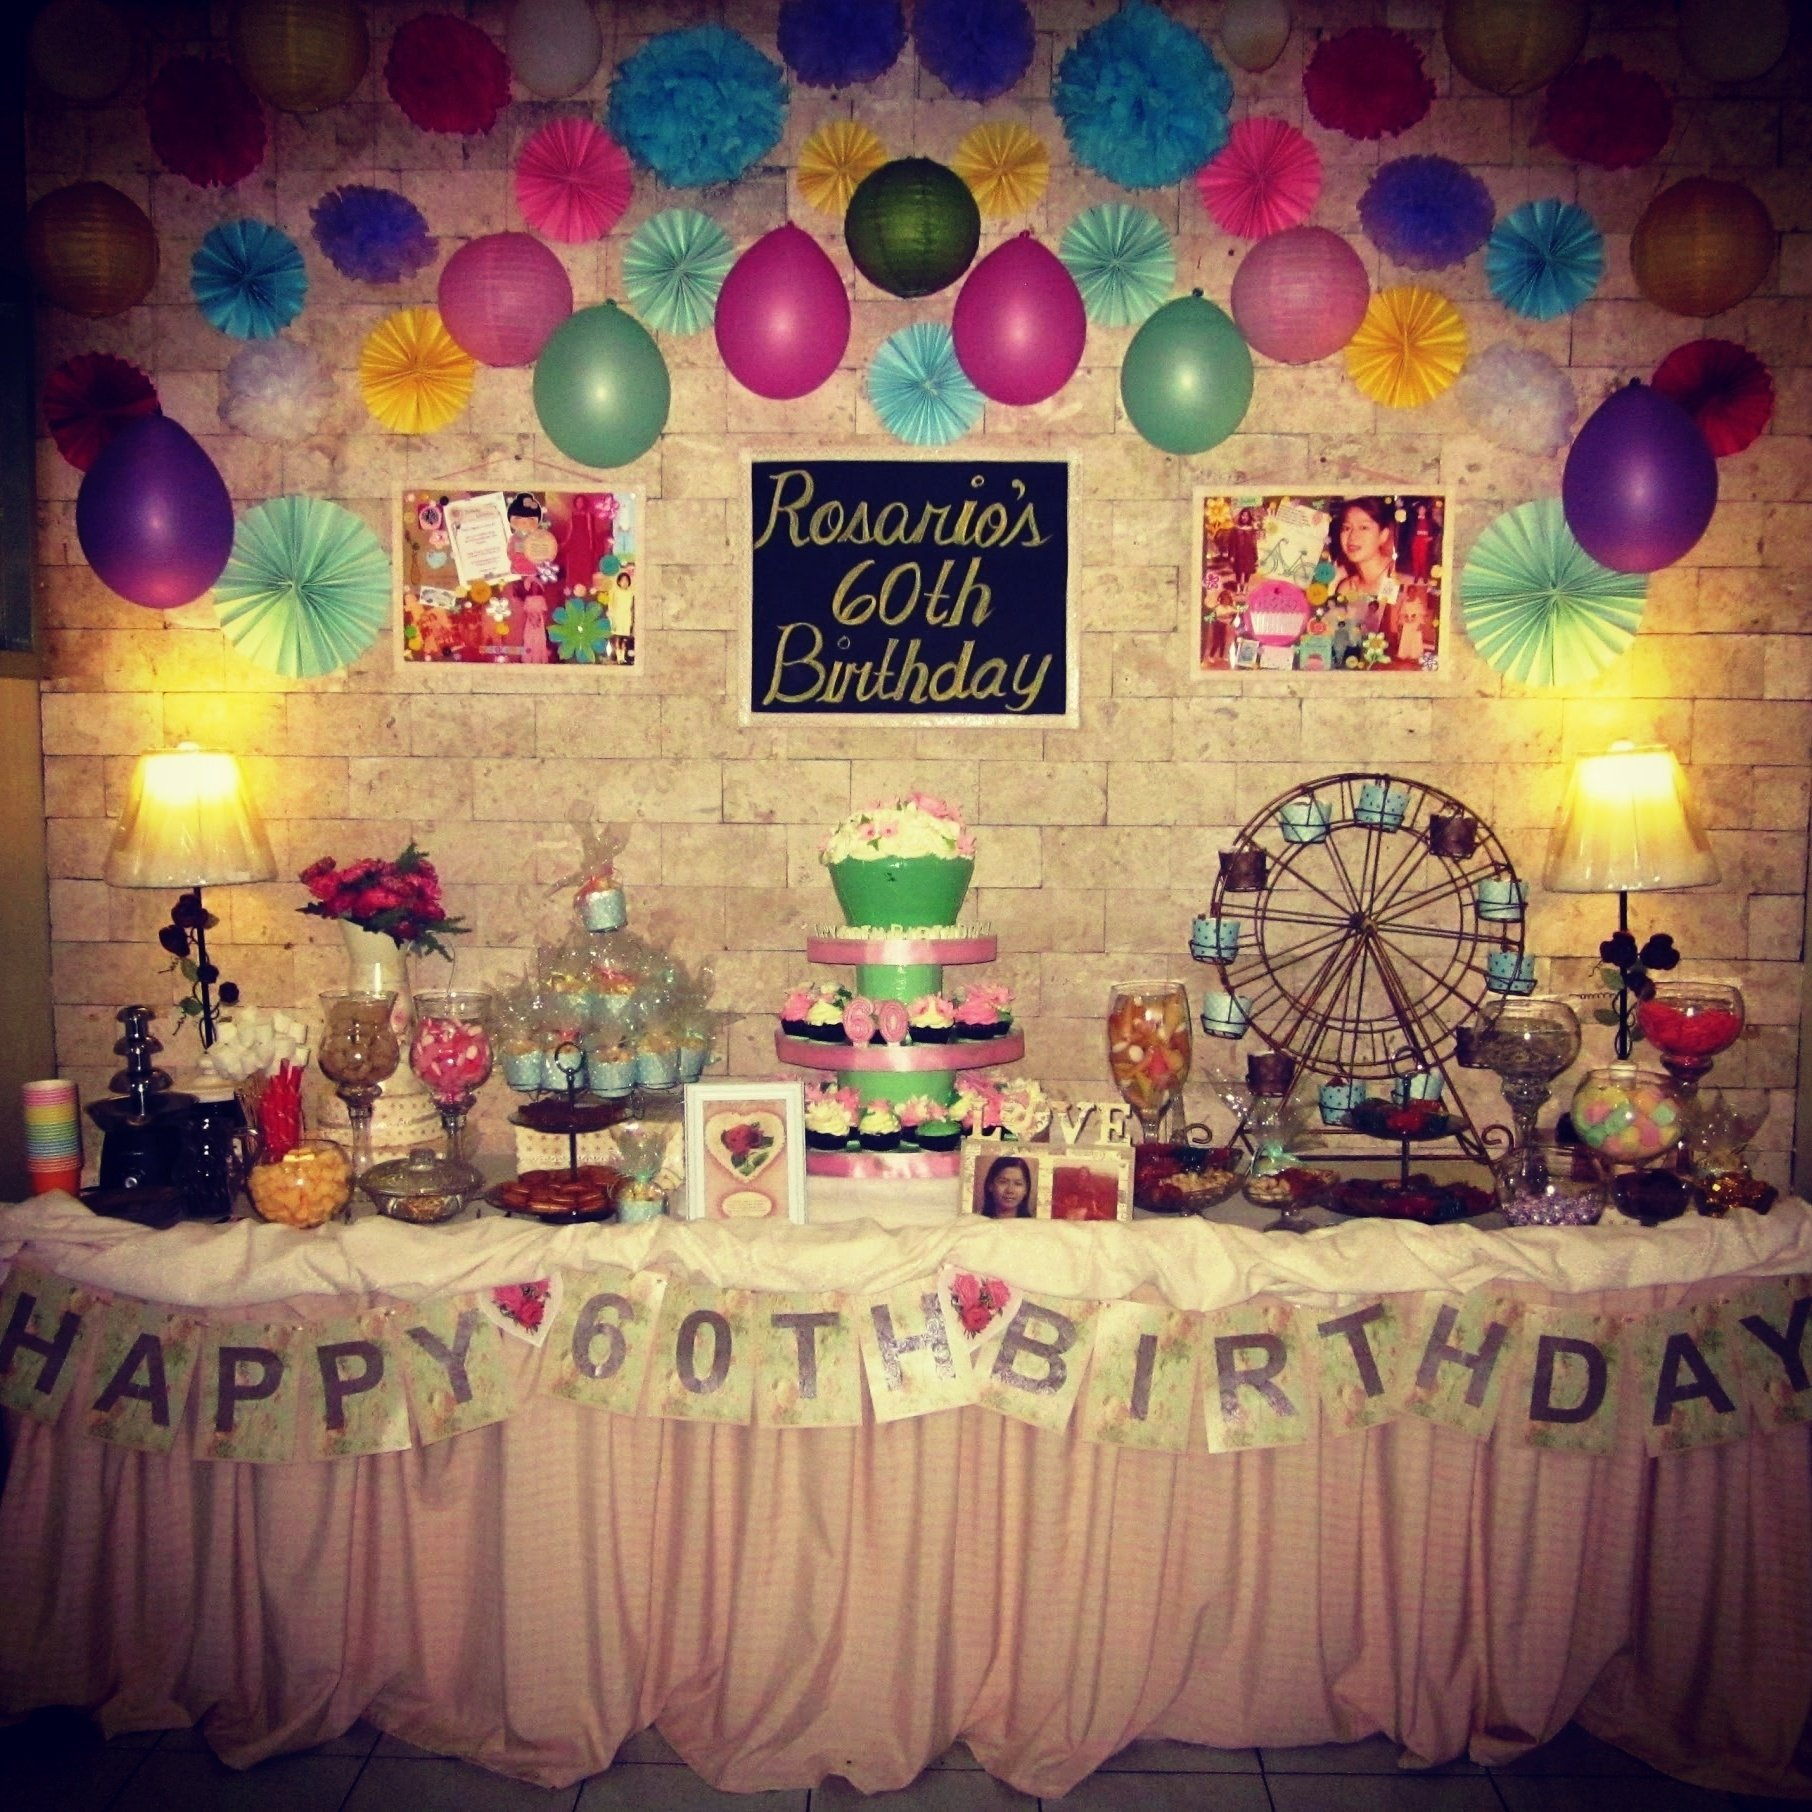 10 Nice 60Th Birthday Party Ideas For Mom 60th birthday party ideas for mom plus mum 60th birthday gift ideas 5 2020